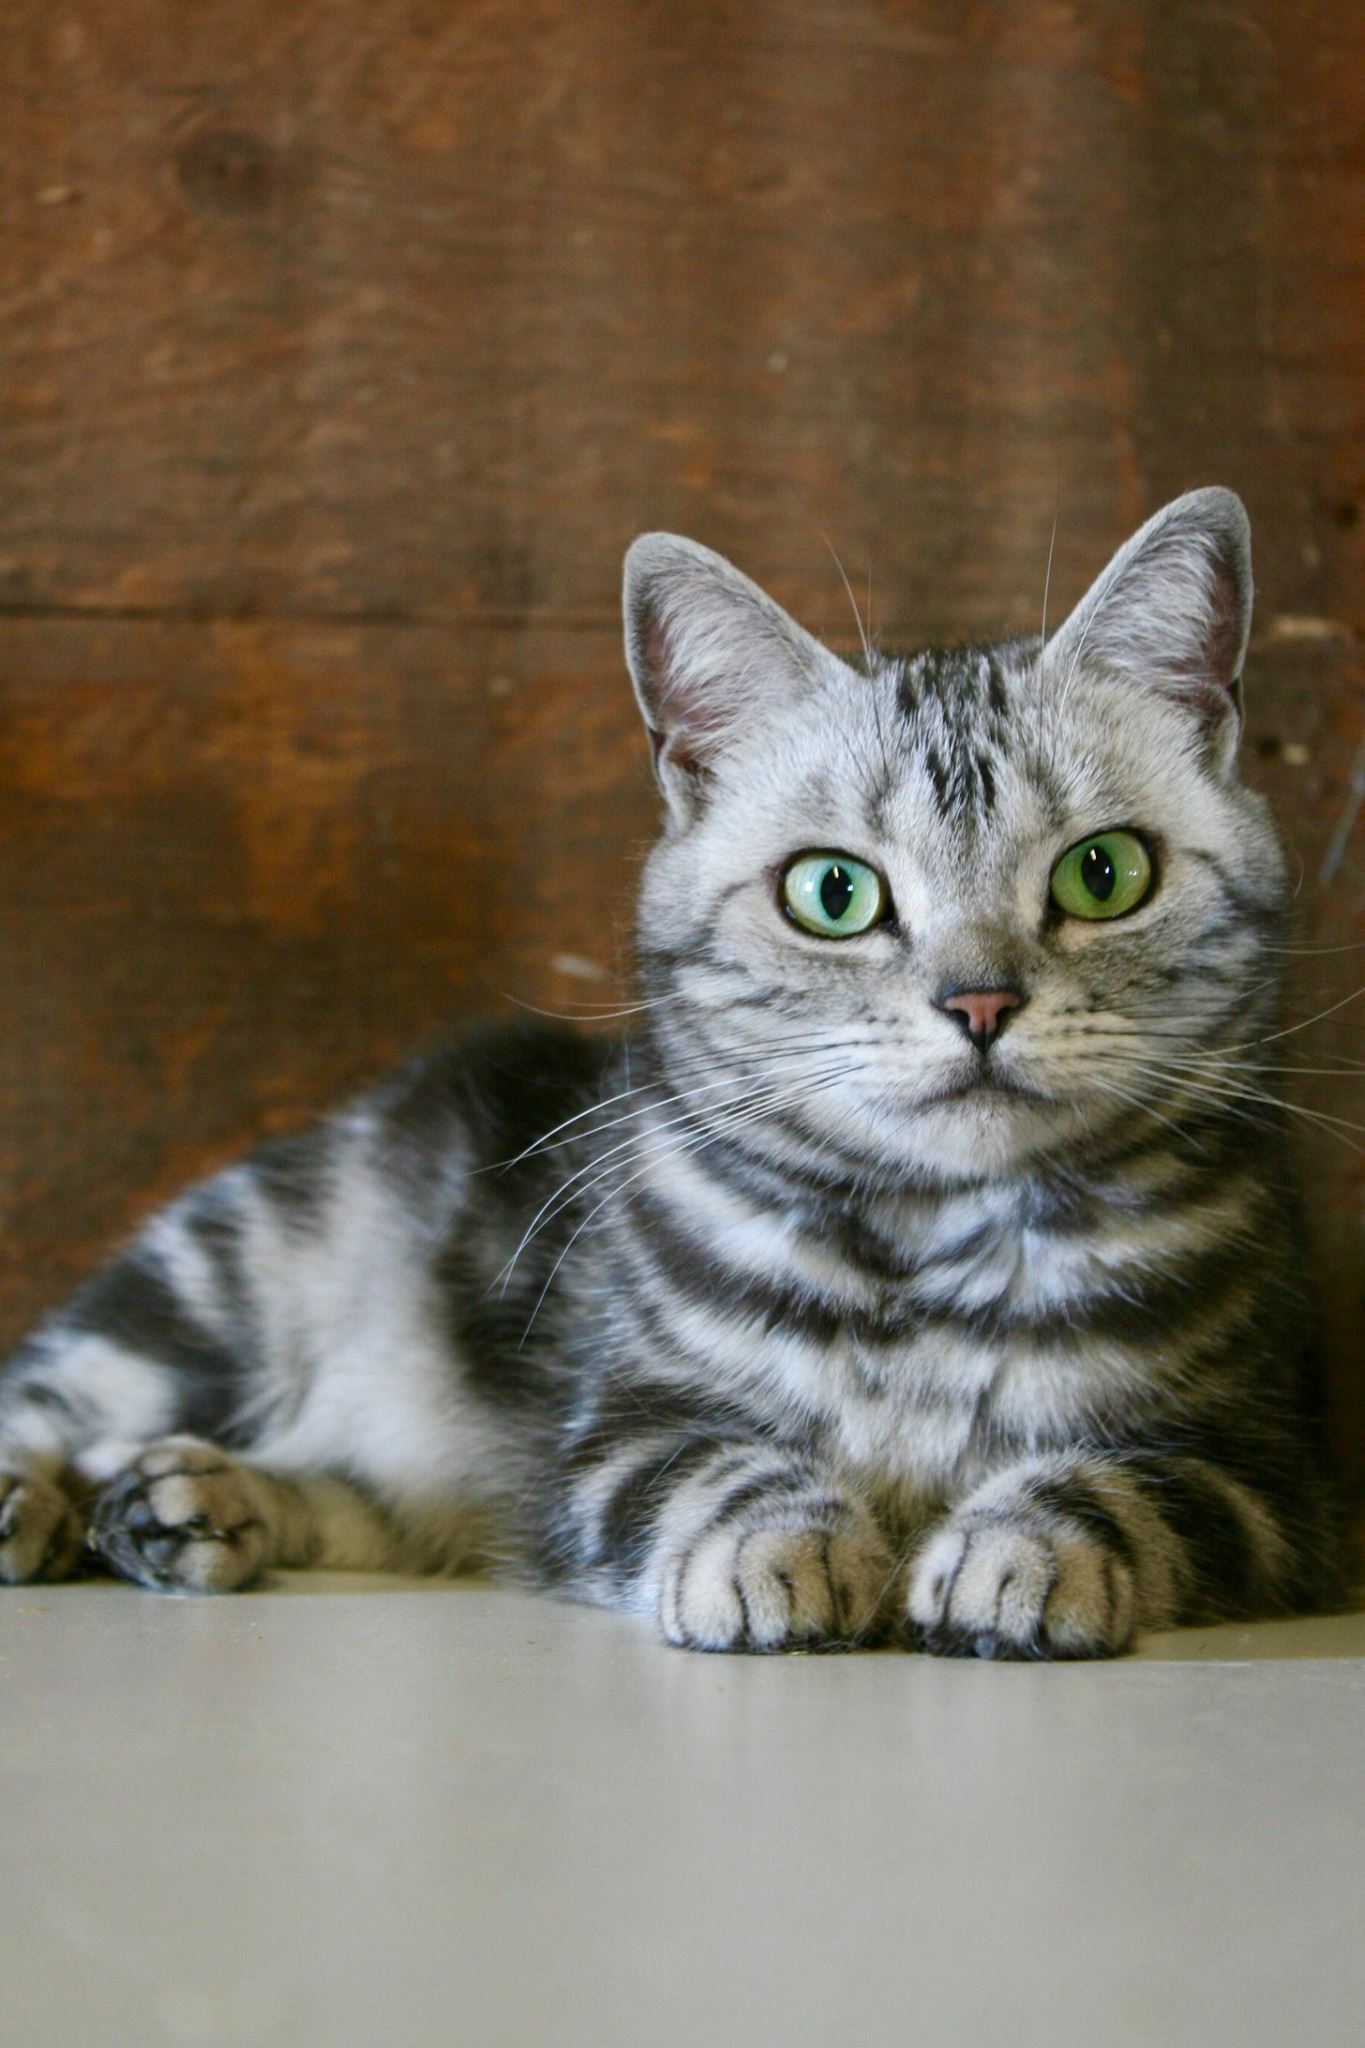 Image of American Shorthair silver tabby cat with emerald green eyes